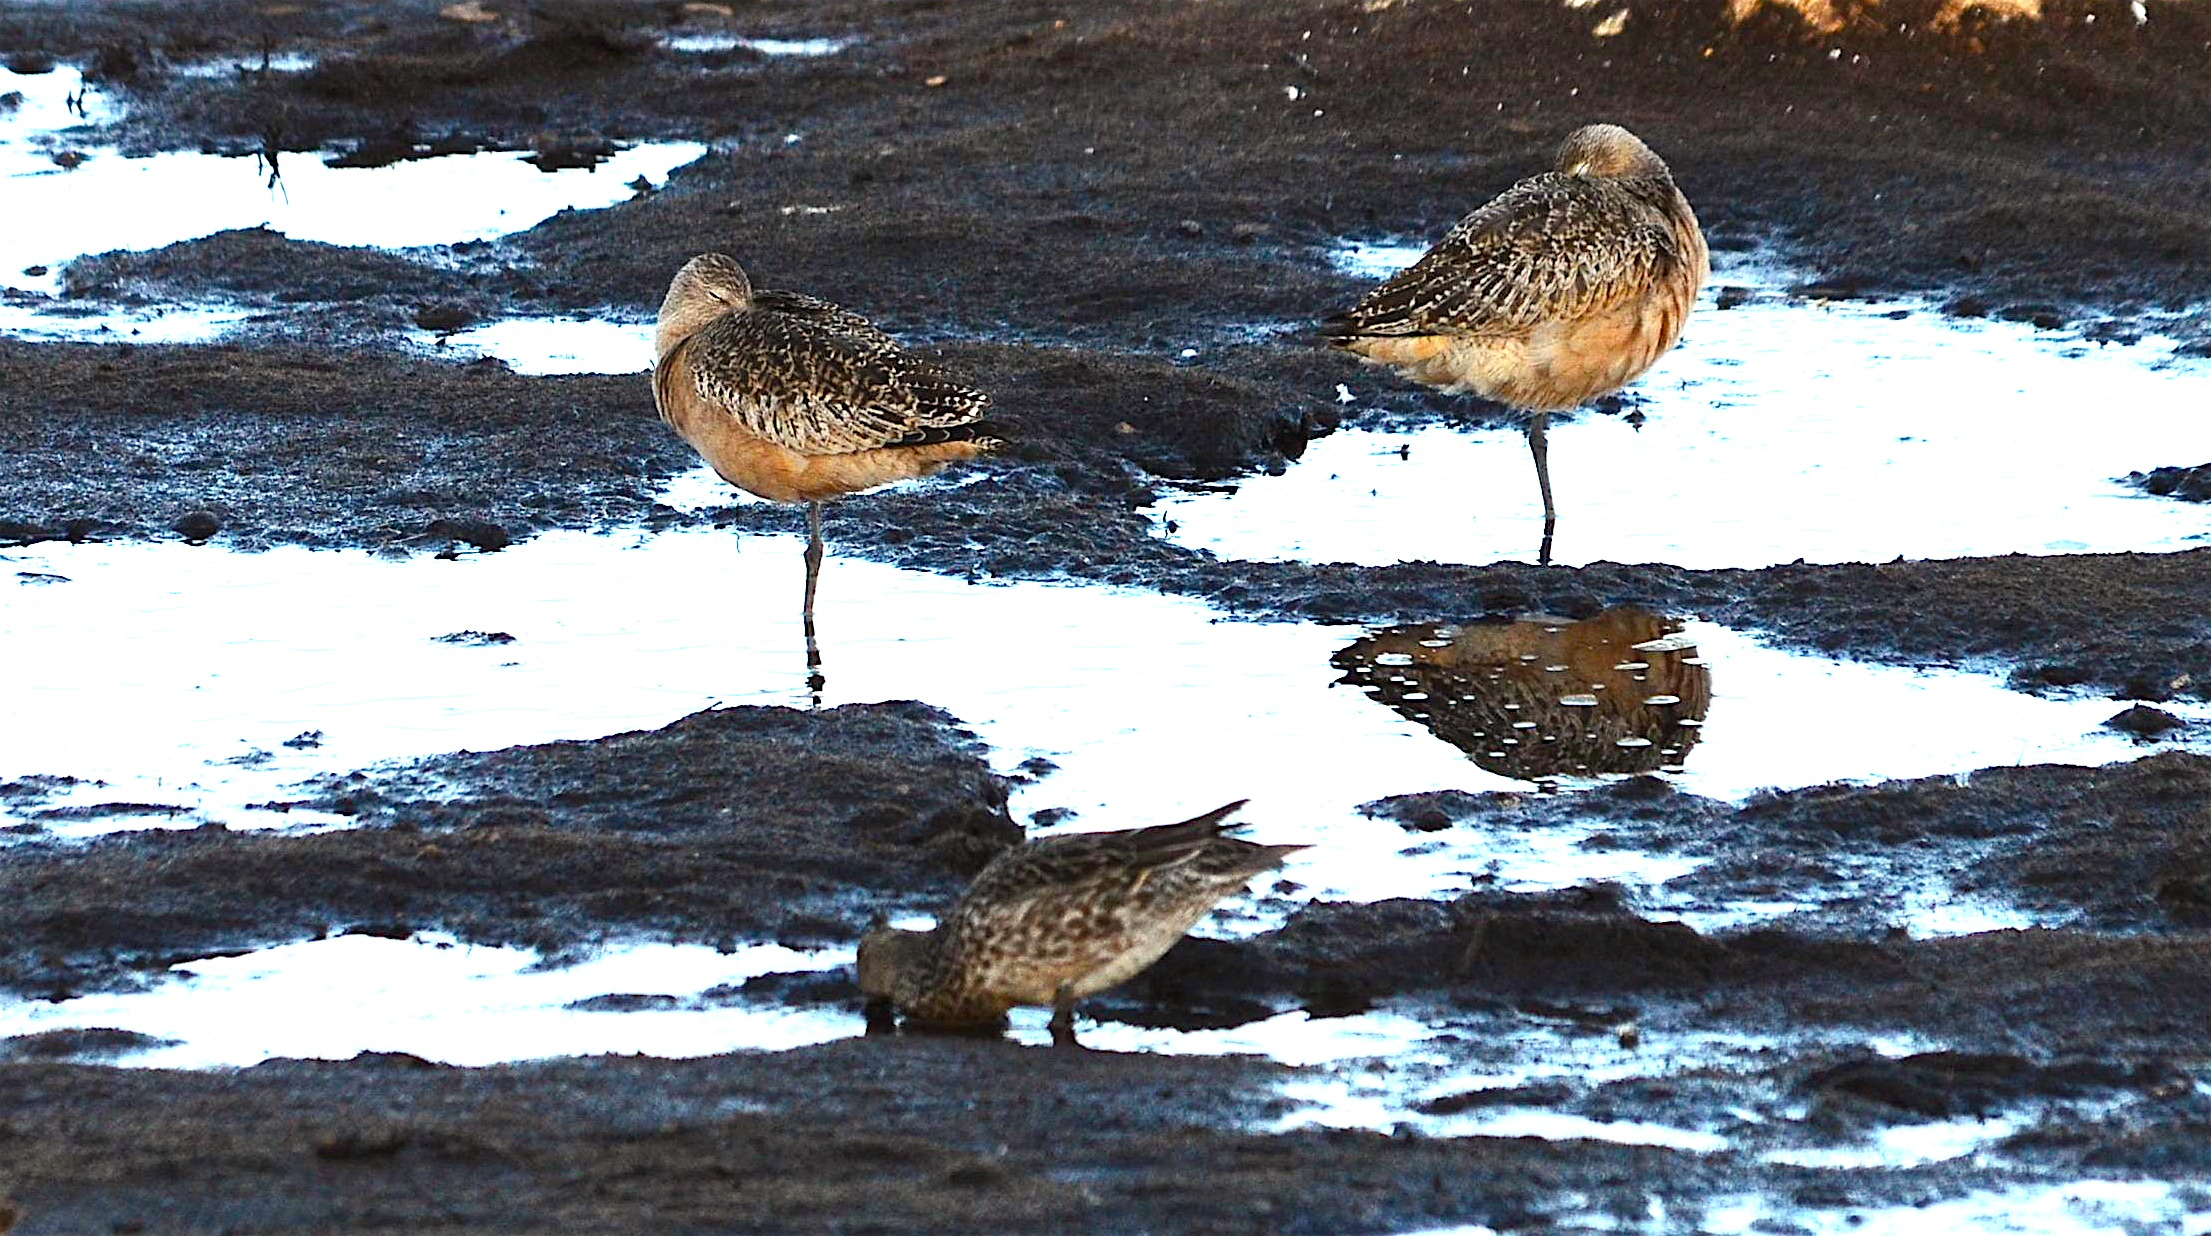 Three godwits in the reserve today